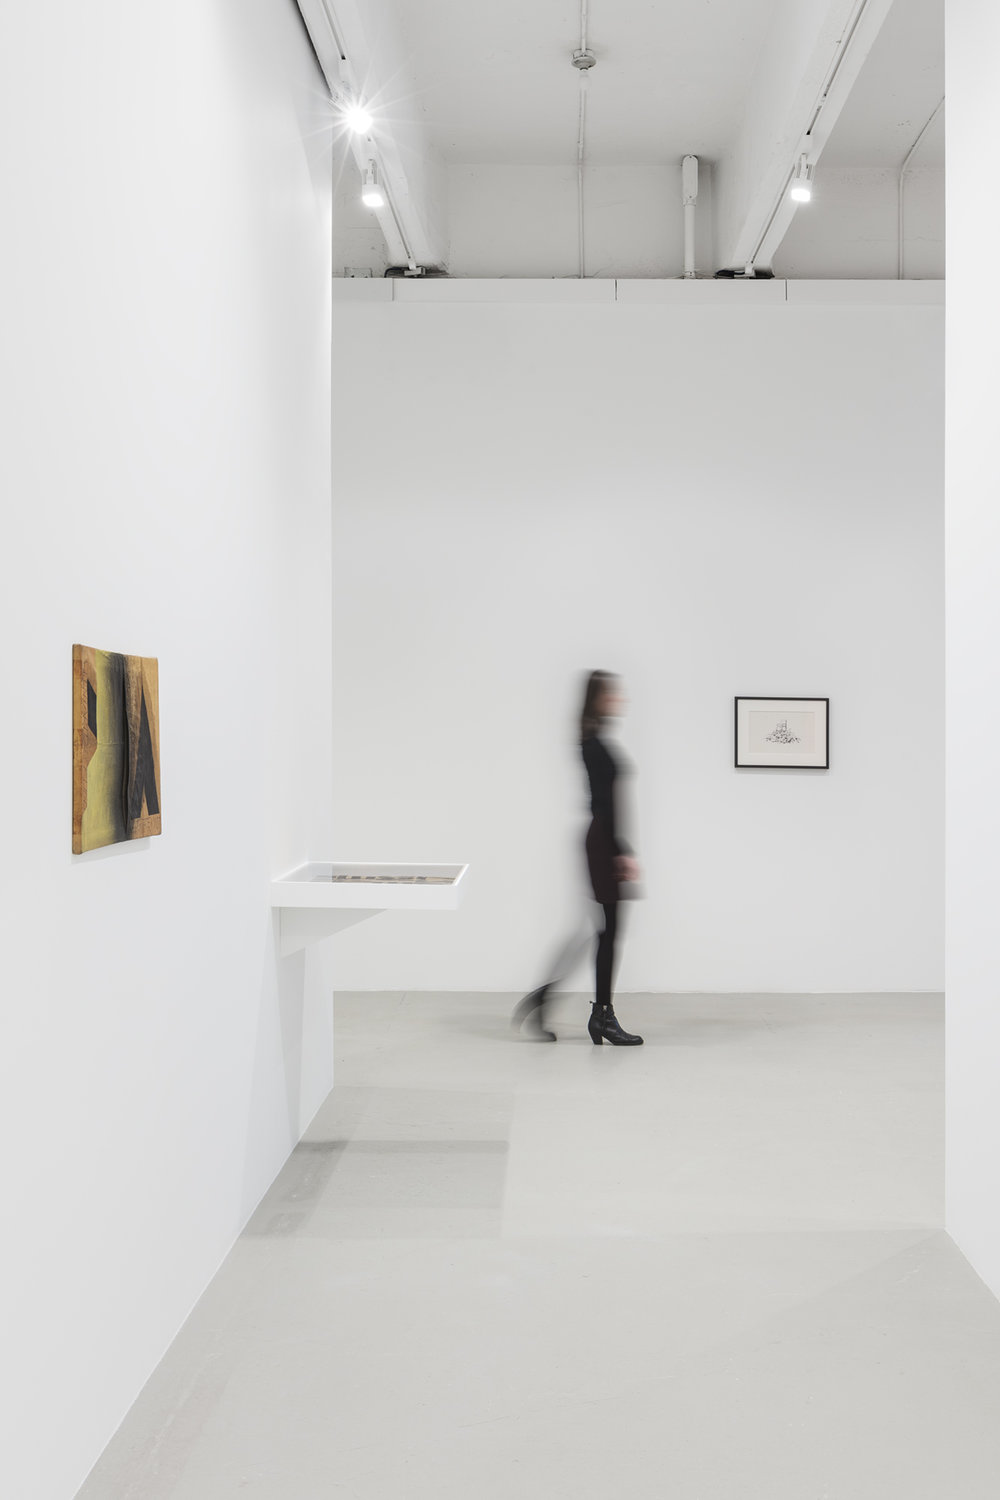 FABIO MAURI With Out Hauser & Wirth (22nd Street)